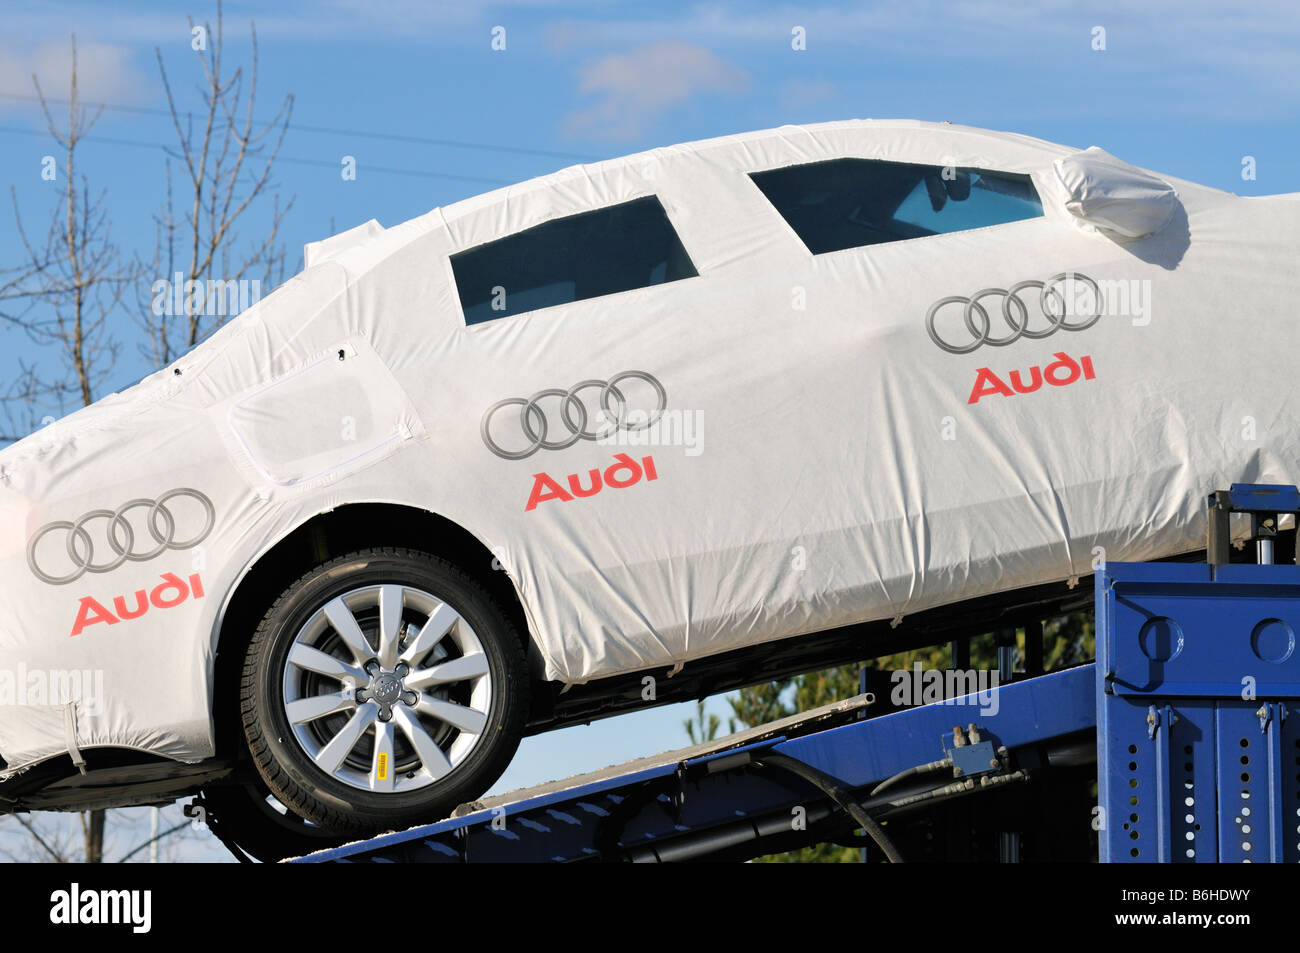 Covered Audi car on car carrier for delivery - Stock Image